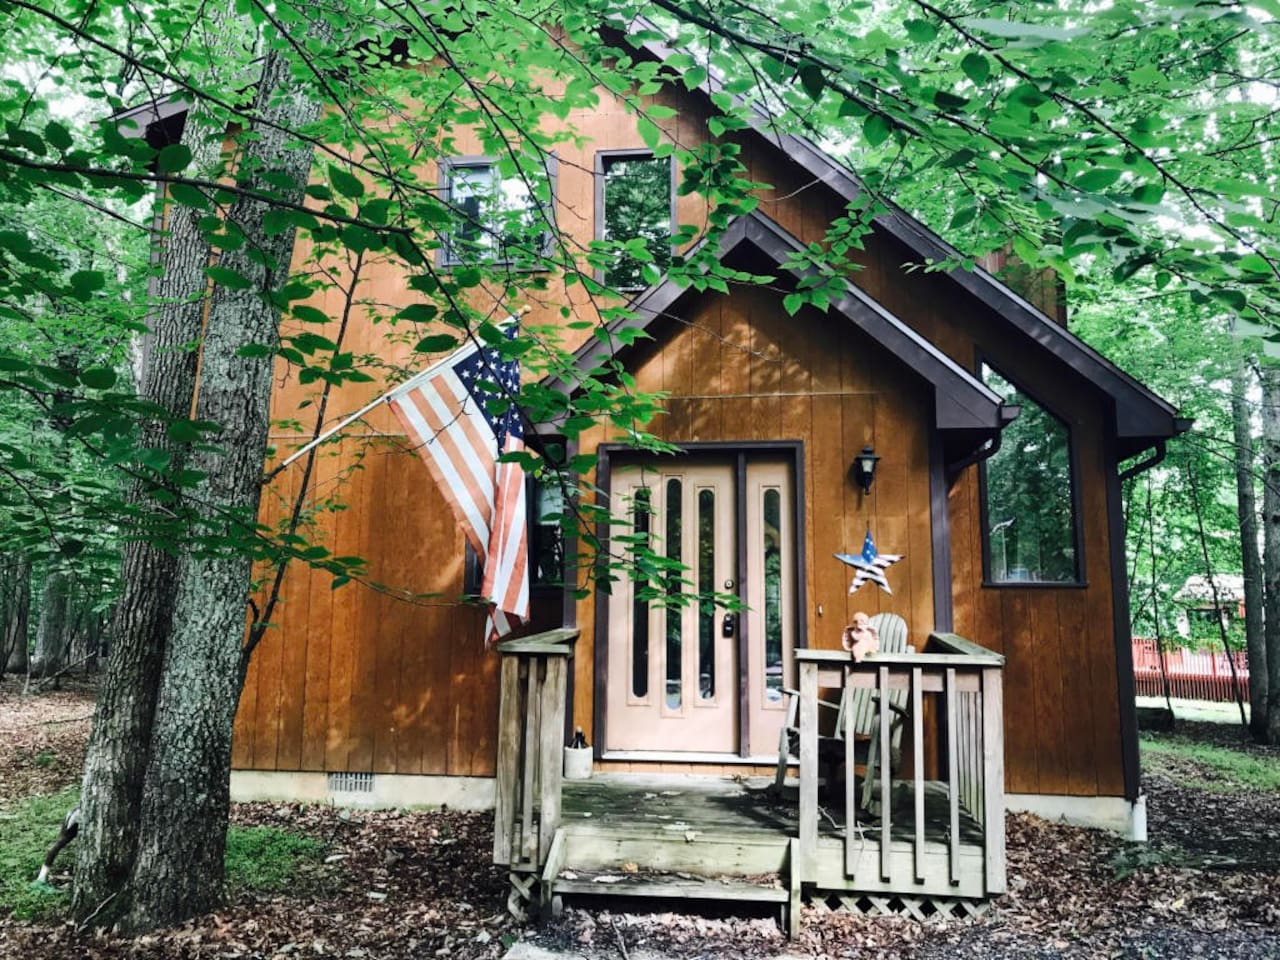 A Little Charming House for Your Family Vacation. We have hosted guests from all over the world: Doctors, Professors, Lawyers including  Canadian popular singers and Ryan Brenizer Top 10 Weeding Photographer in the world!  They loved the nature here!